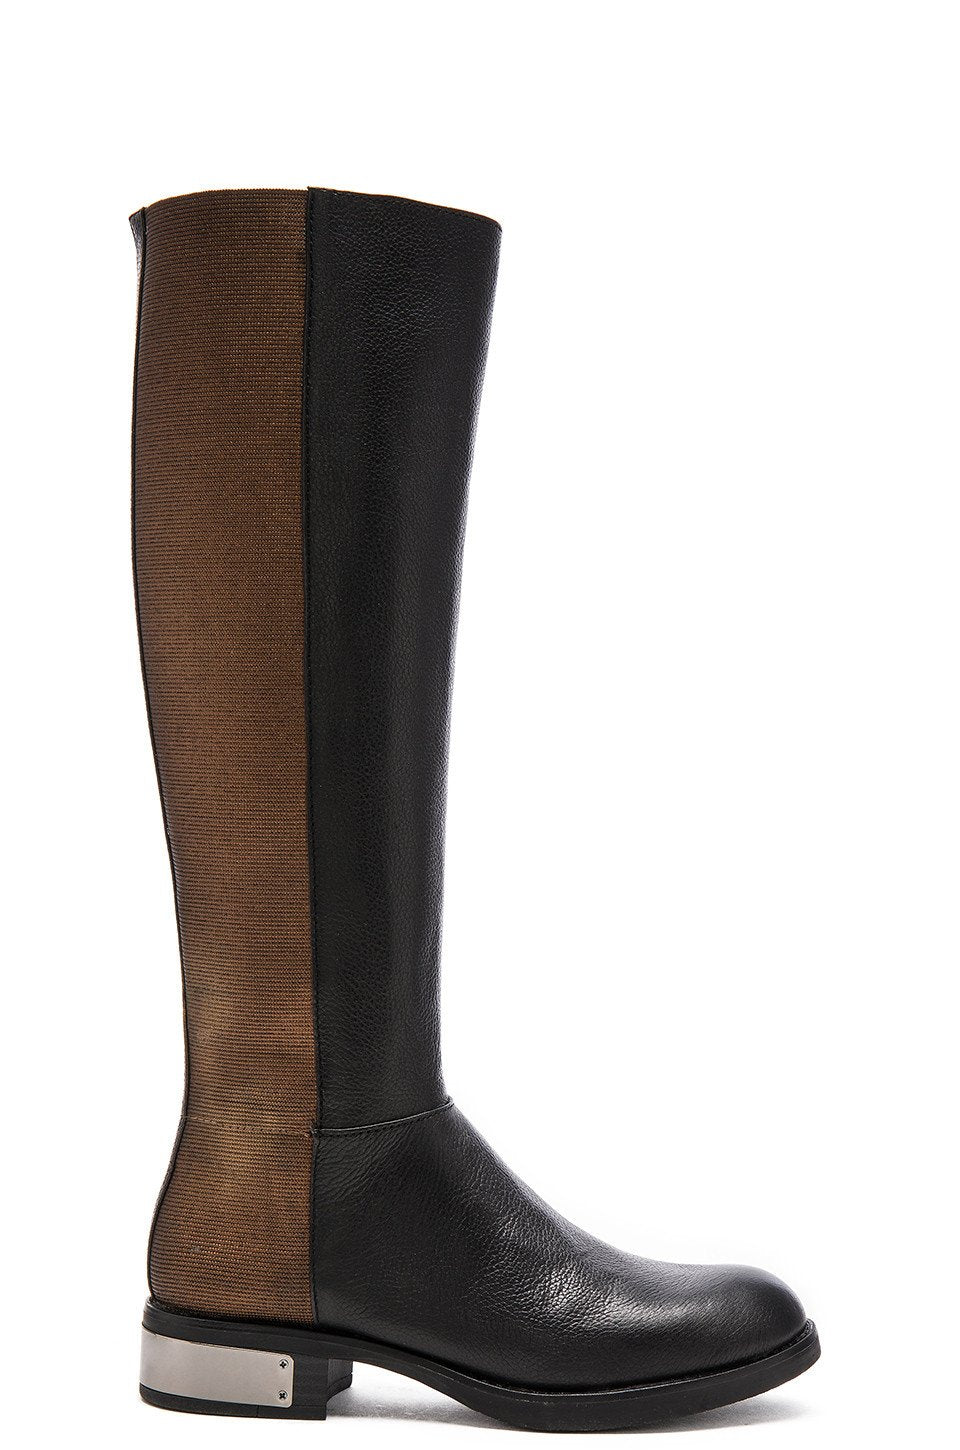 Roxie Boot - Kustom Label - 1